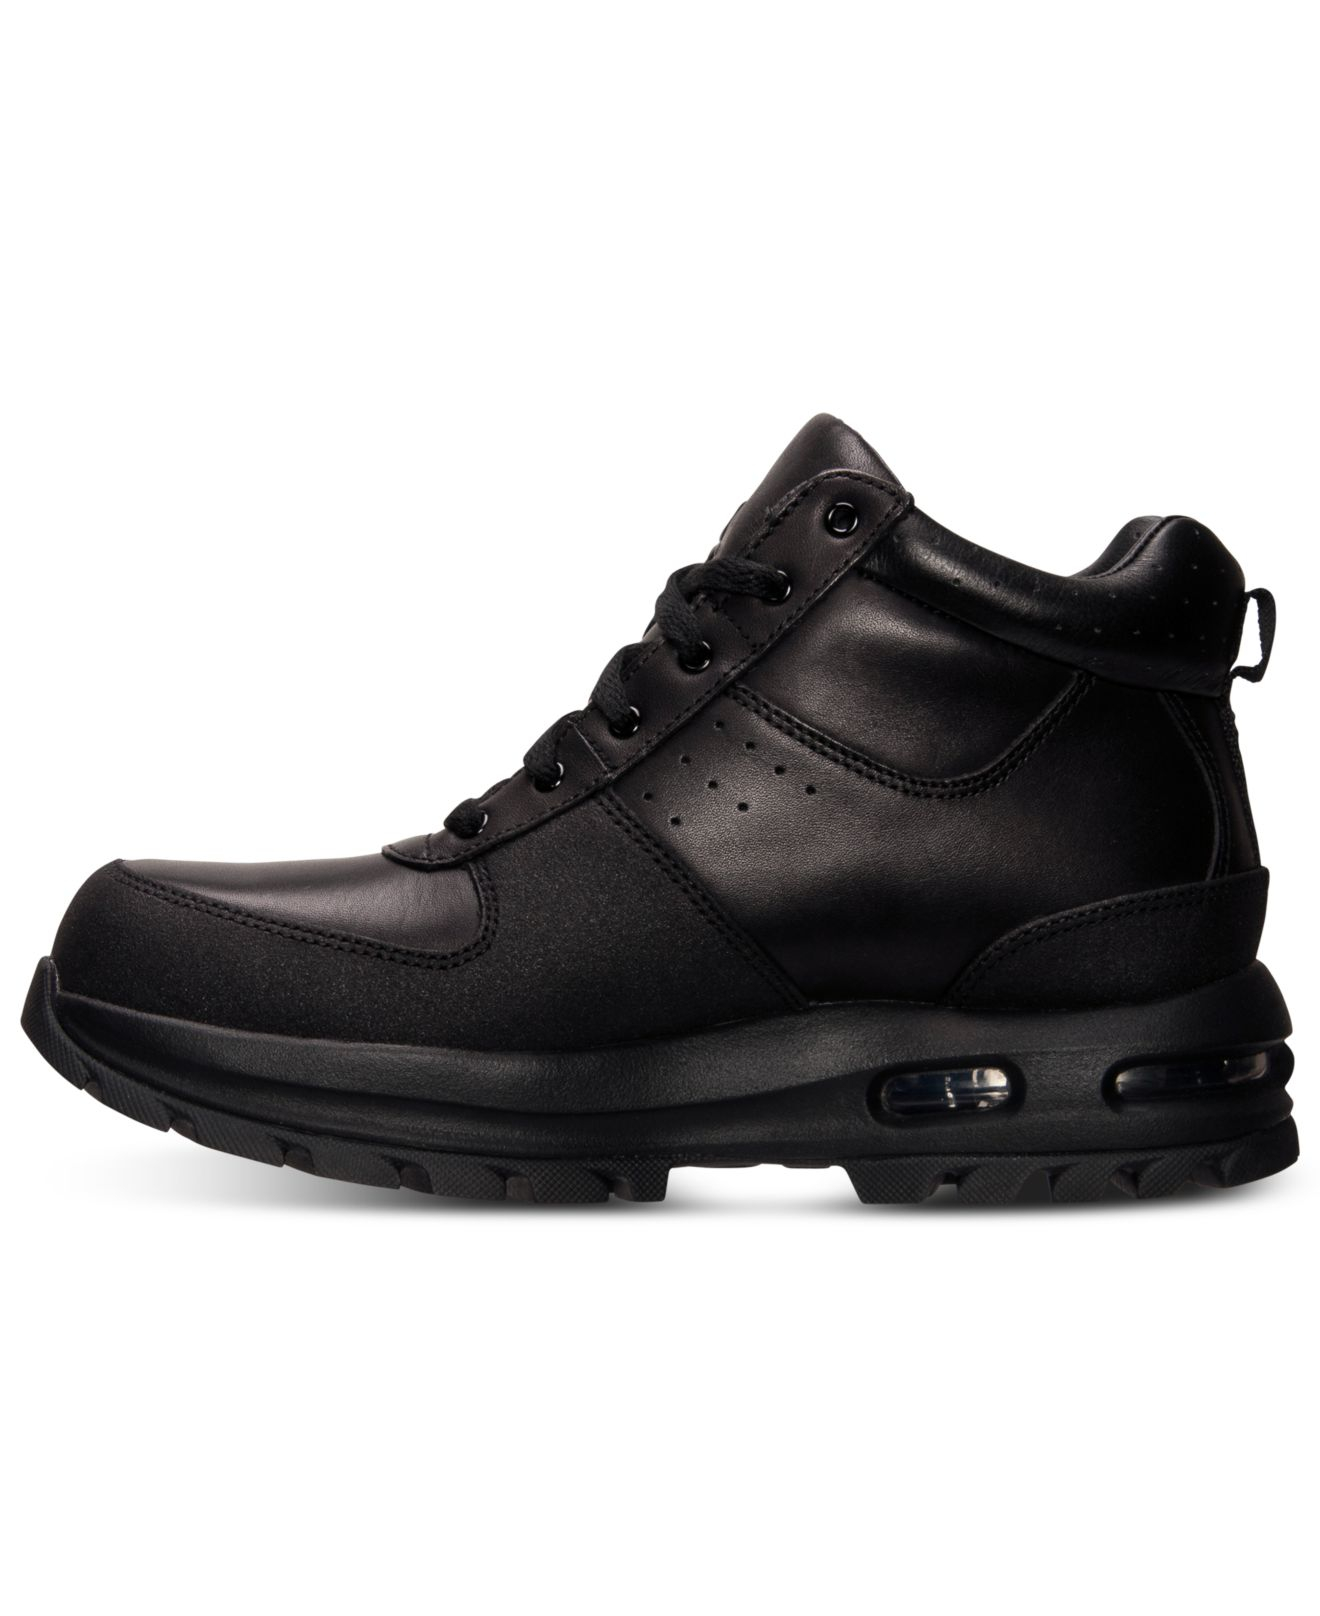 bf4c9f8d0e25 Lyst - Nike Air Max Goaterra Leather Boots in Black for Men